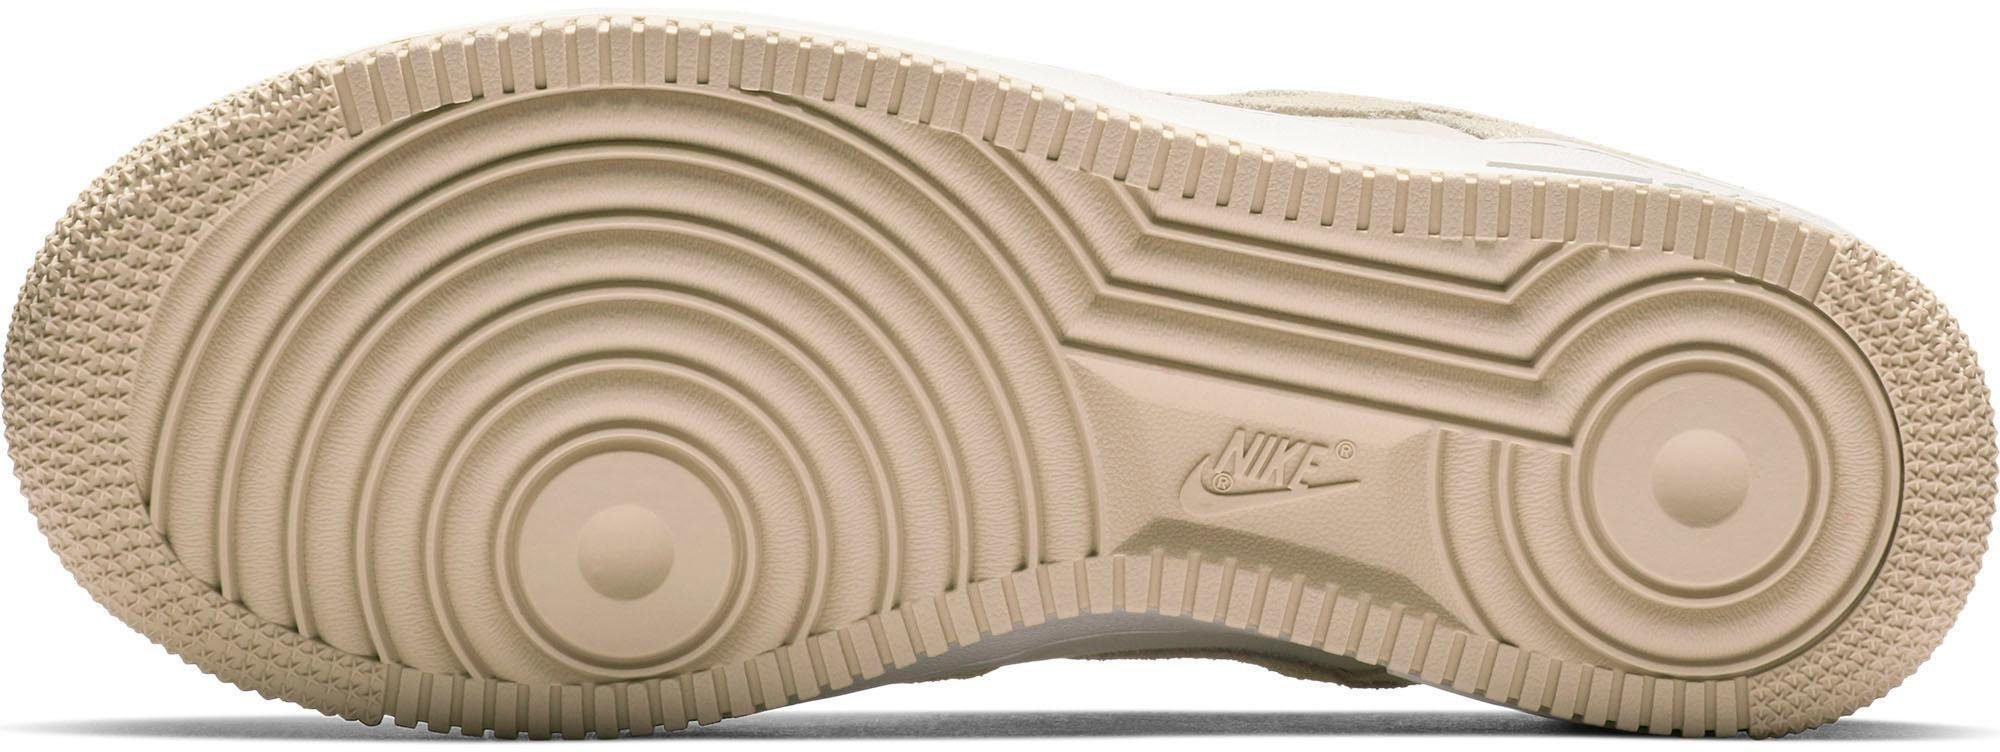 force 1 '07 low« sportswear sneakers nike air »wmns beige wPgqxIZp